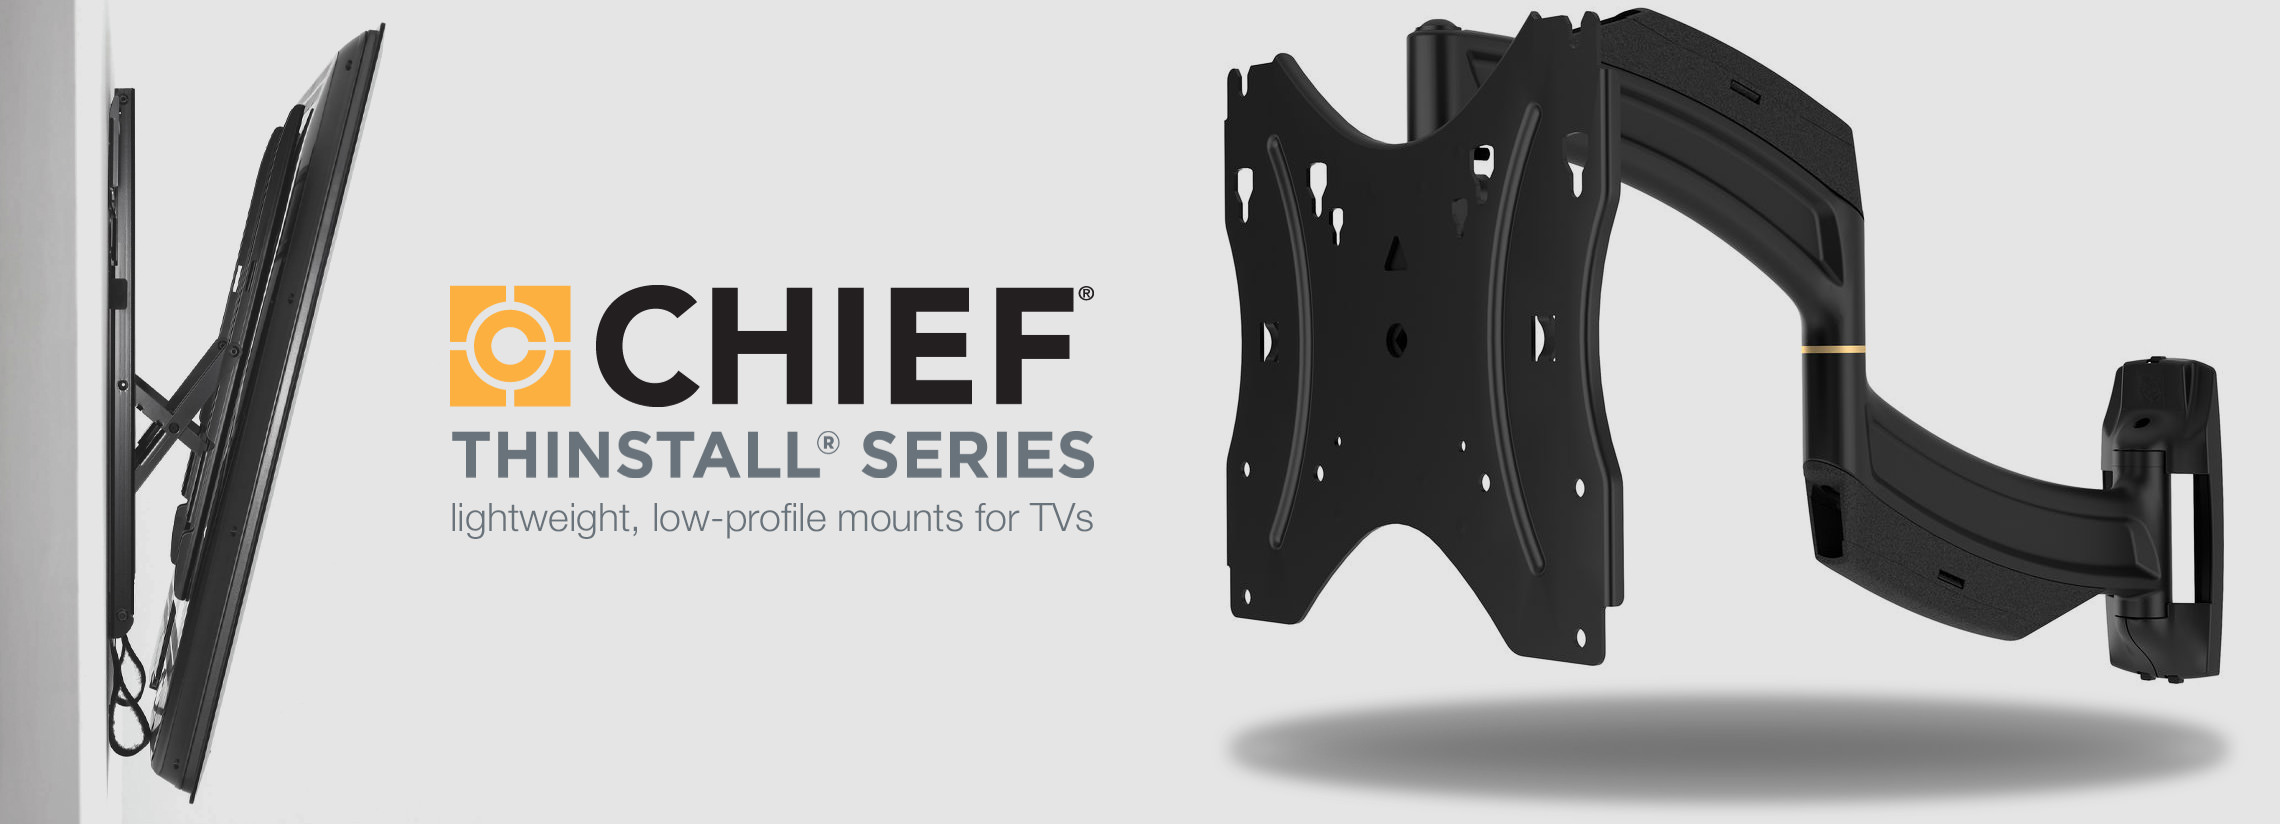 chief thinstall series tv mounts